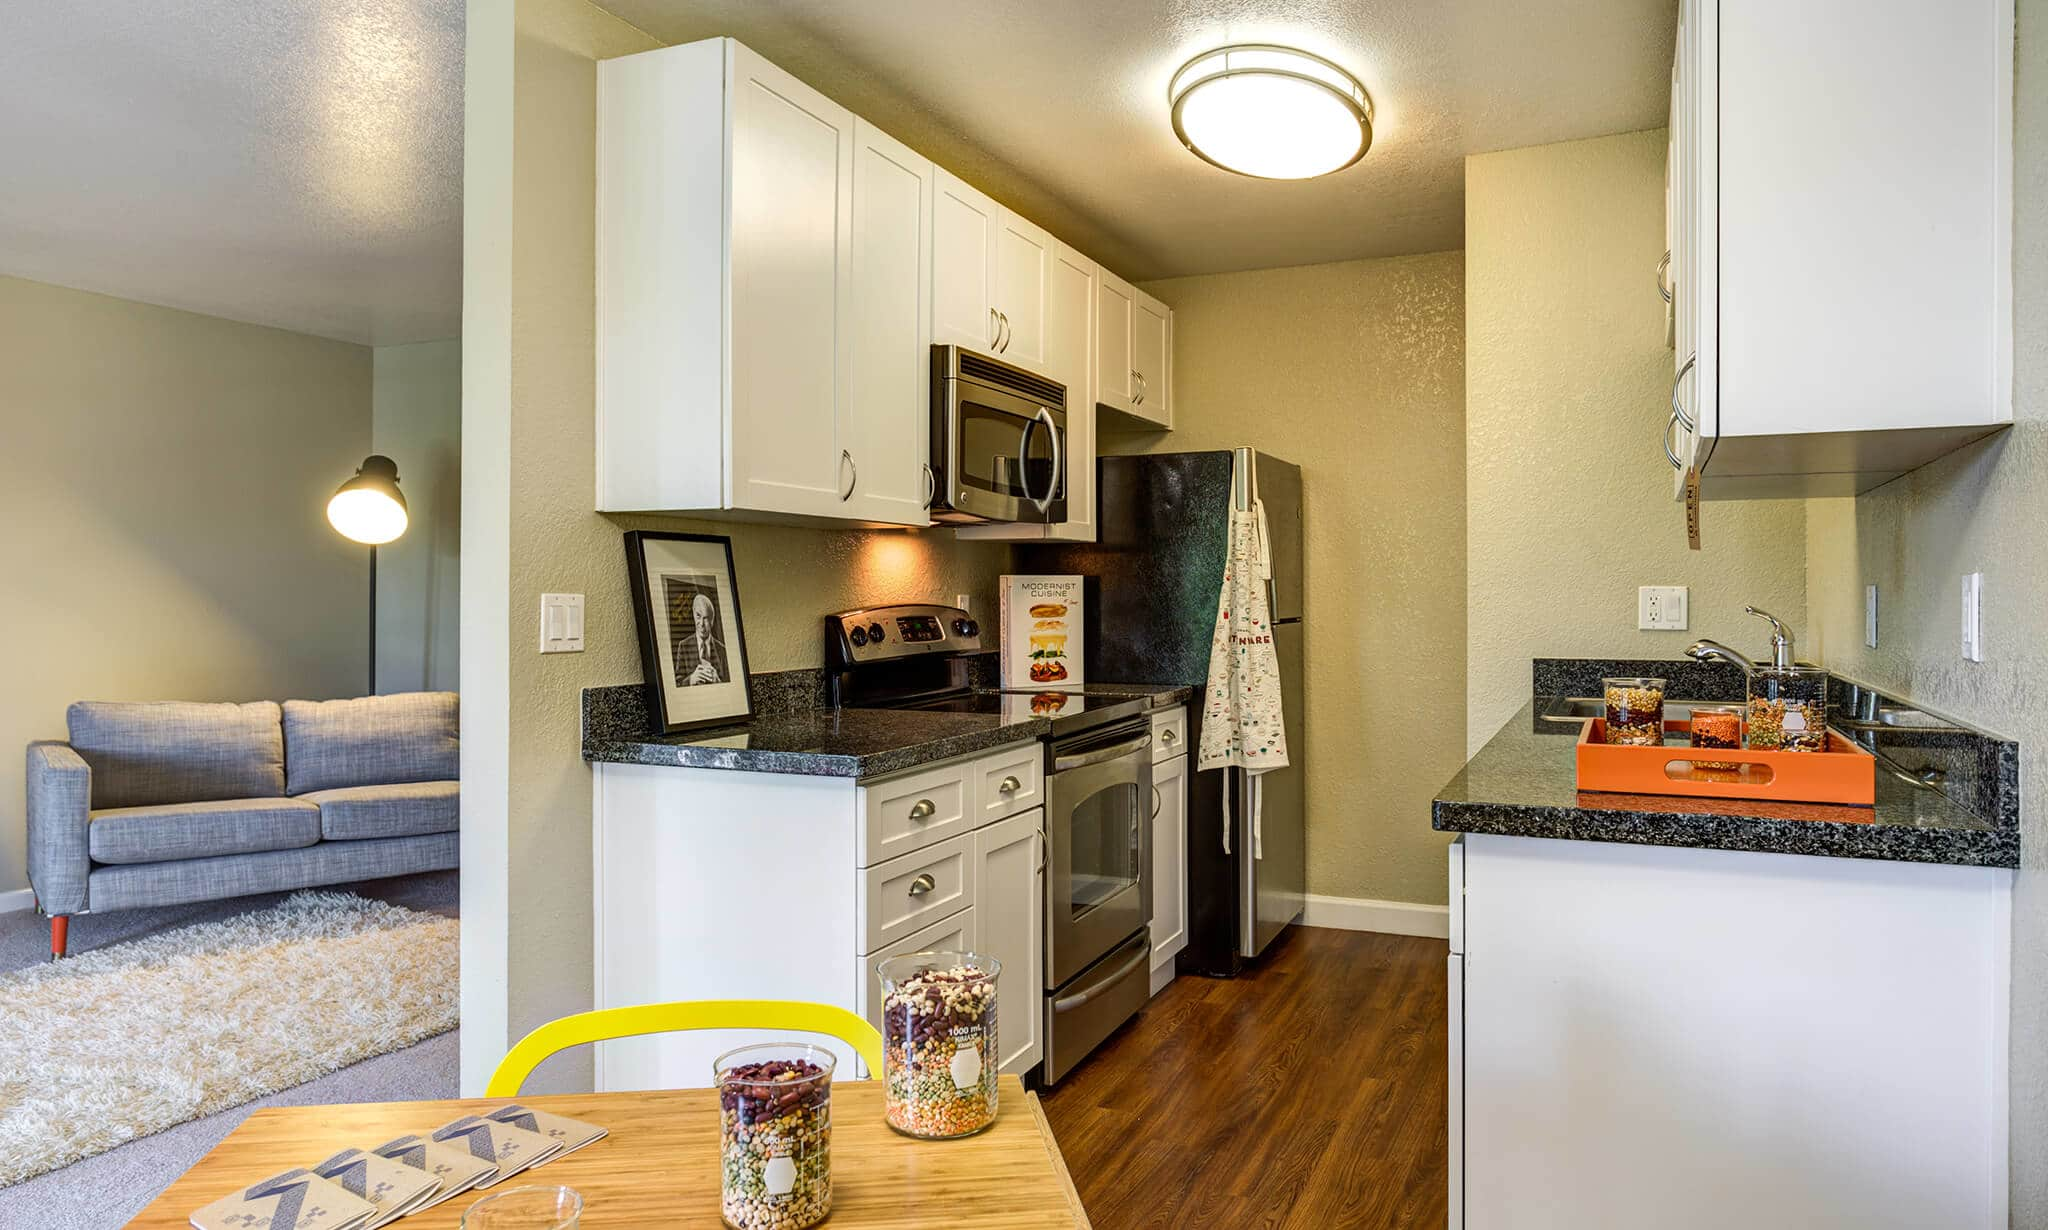 Heatherstone Apartments apartments in Mountain View CA to rent photo 8